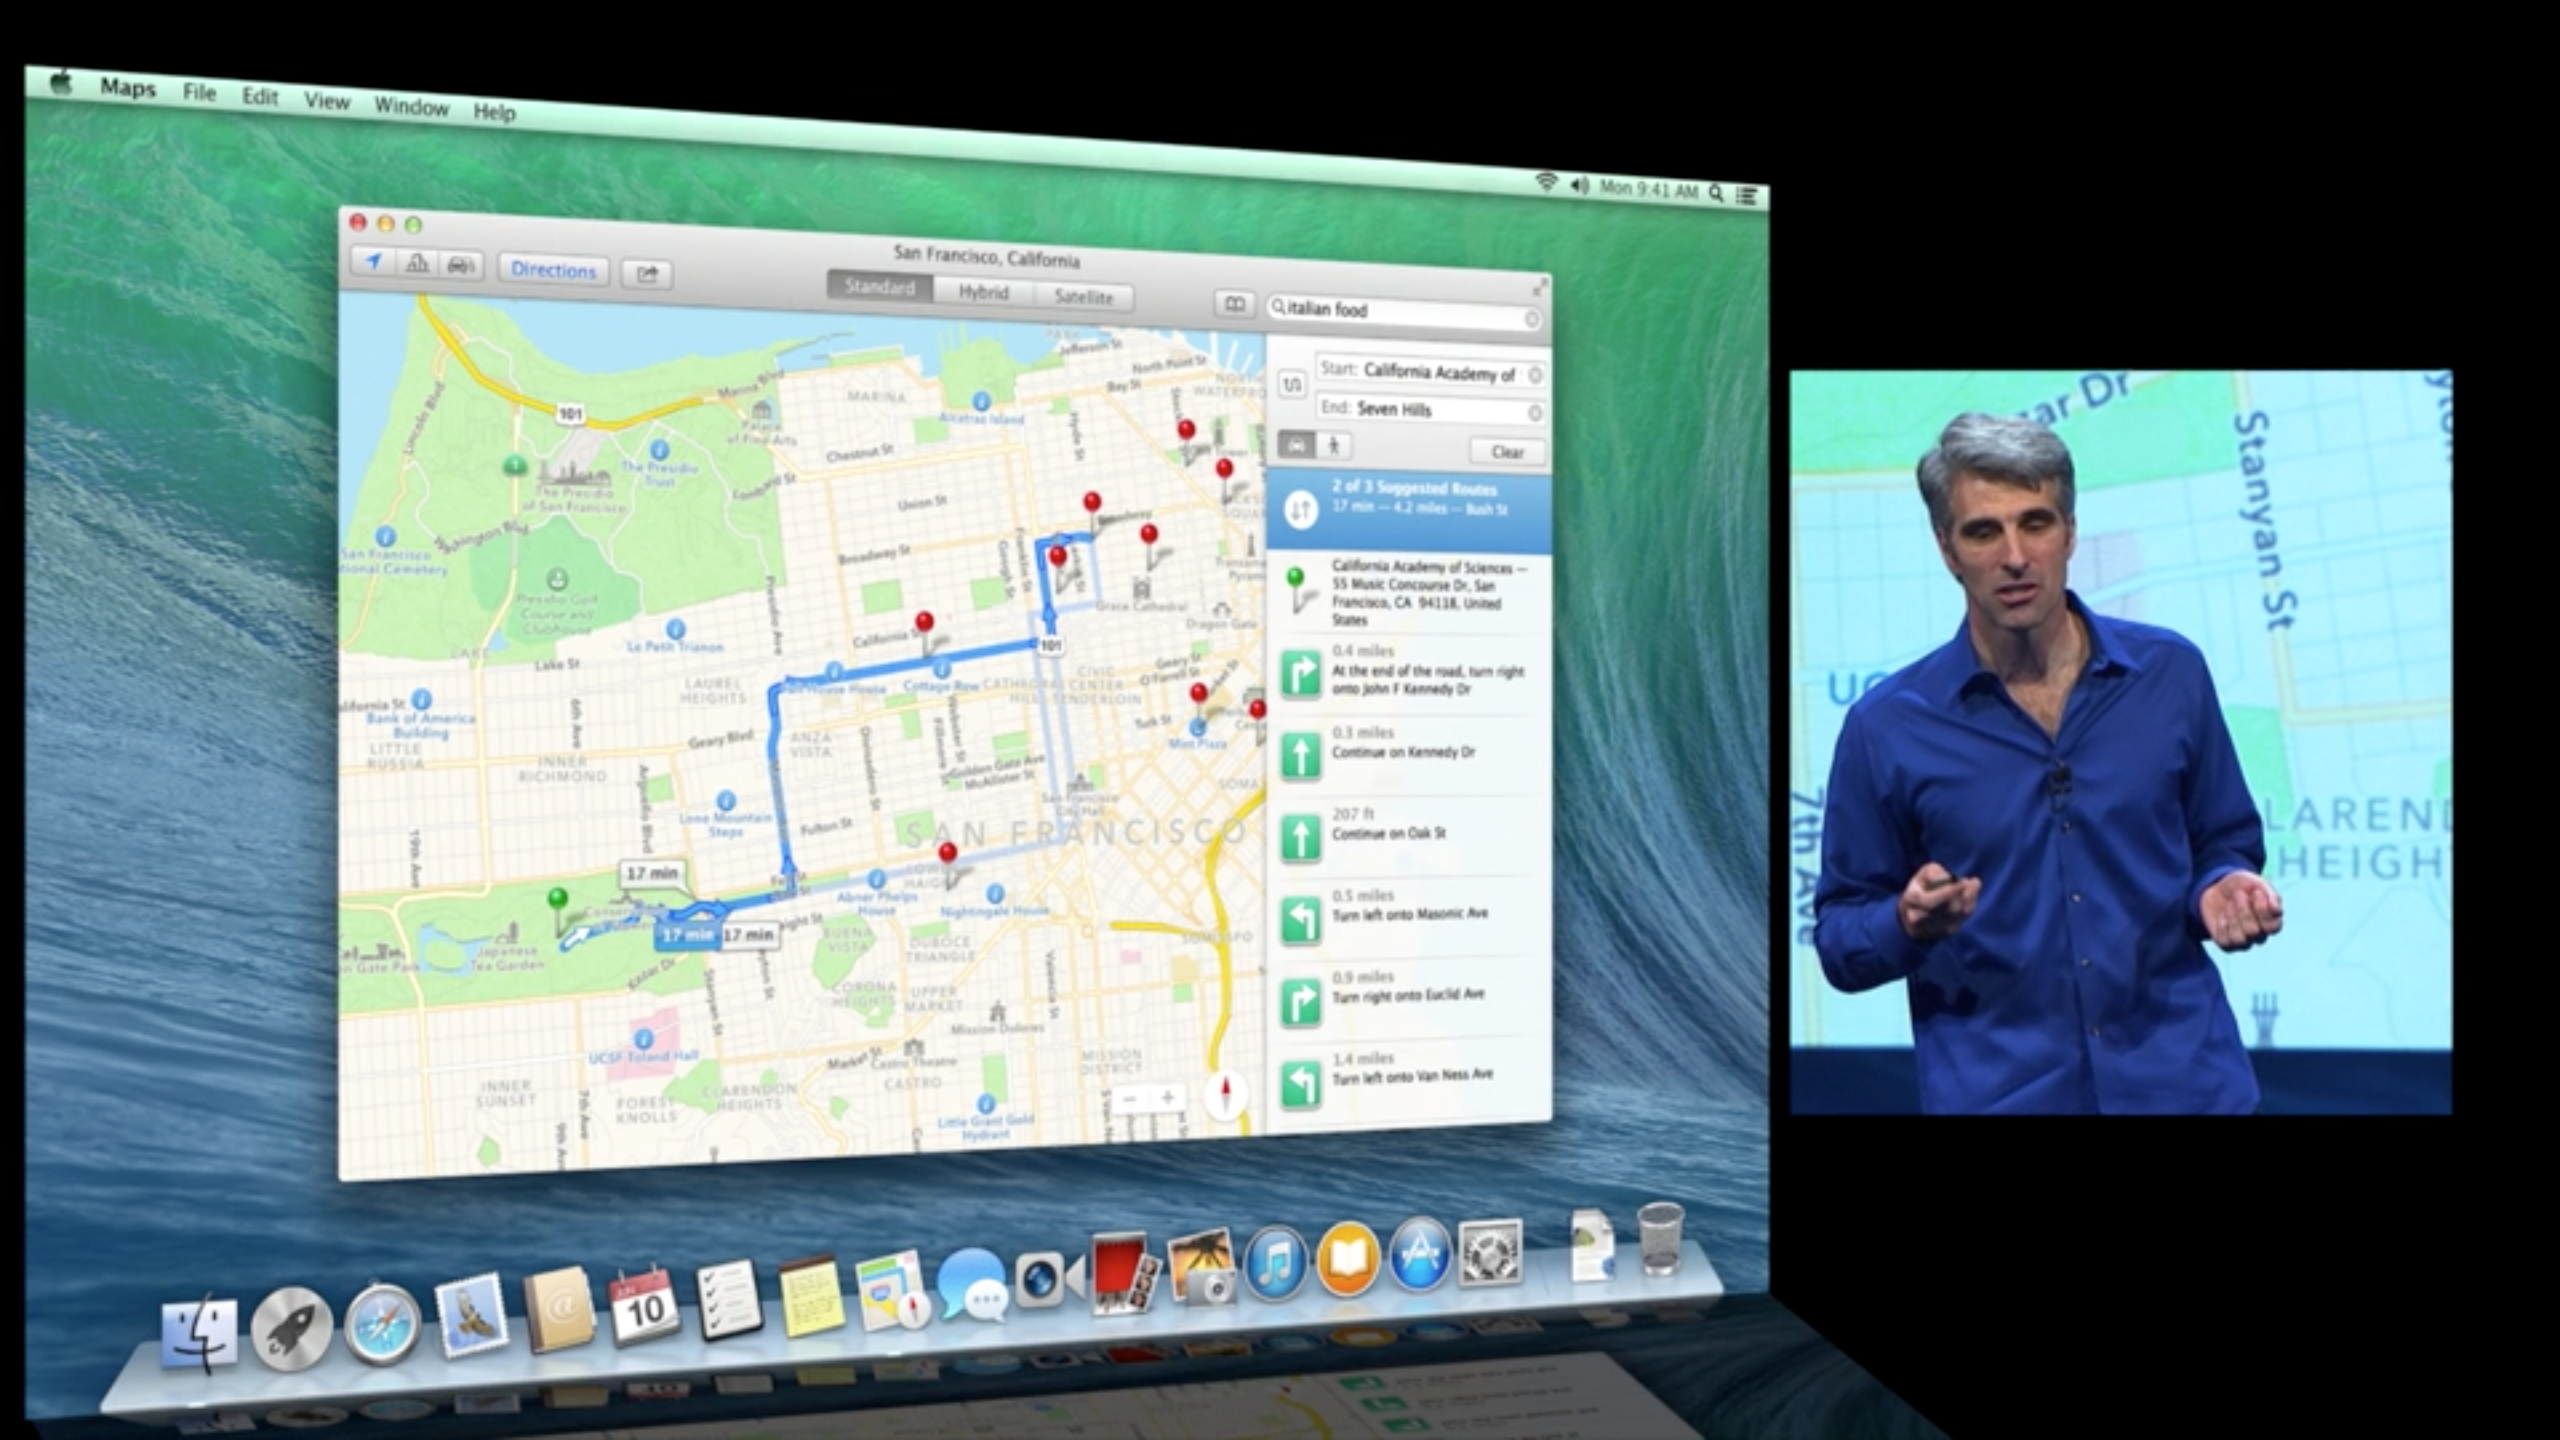 OS X Mavericks - Maps